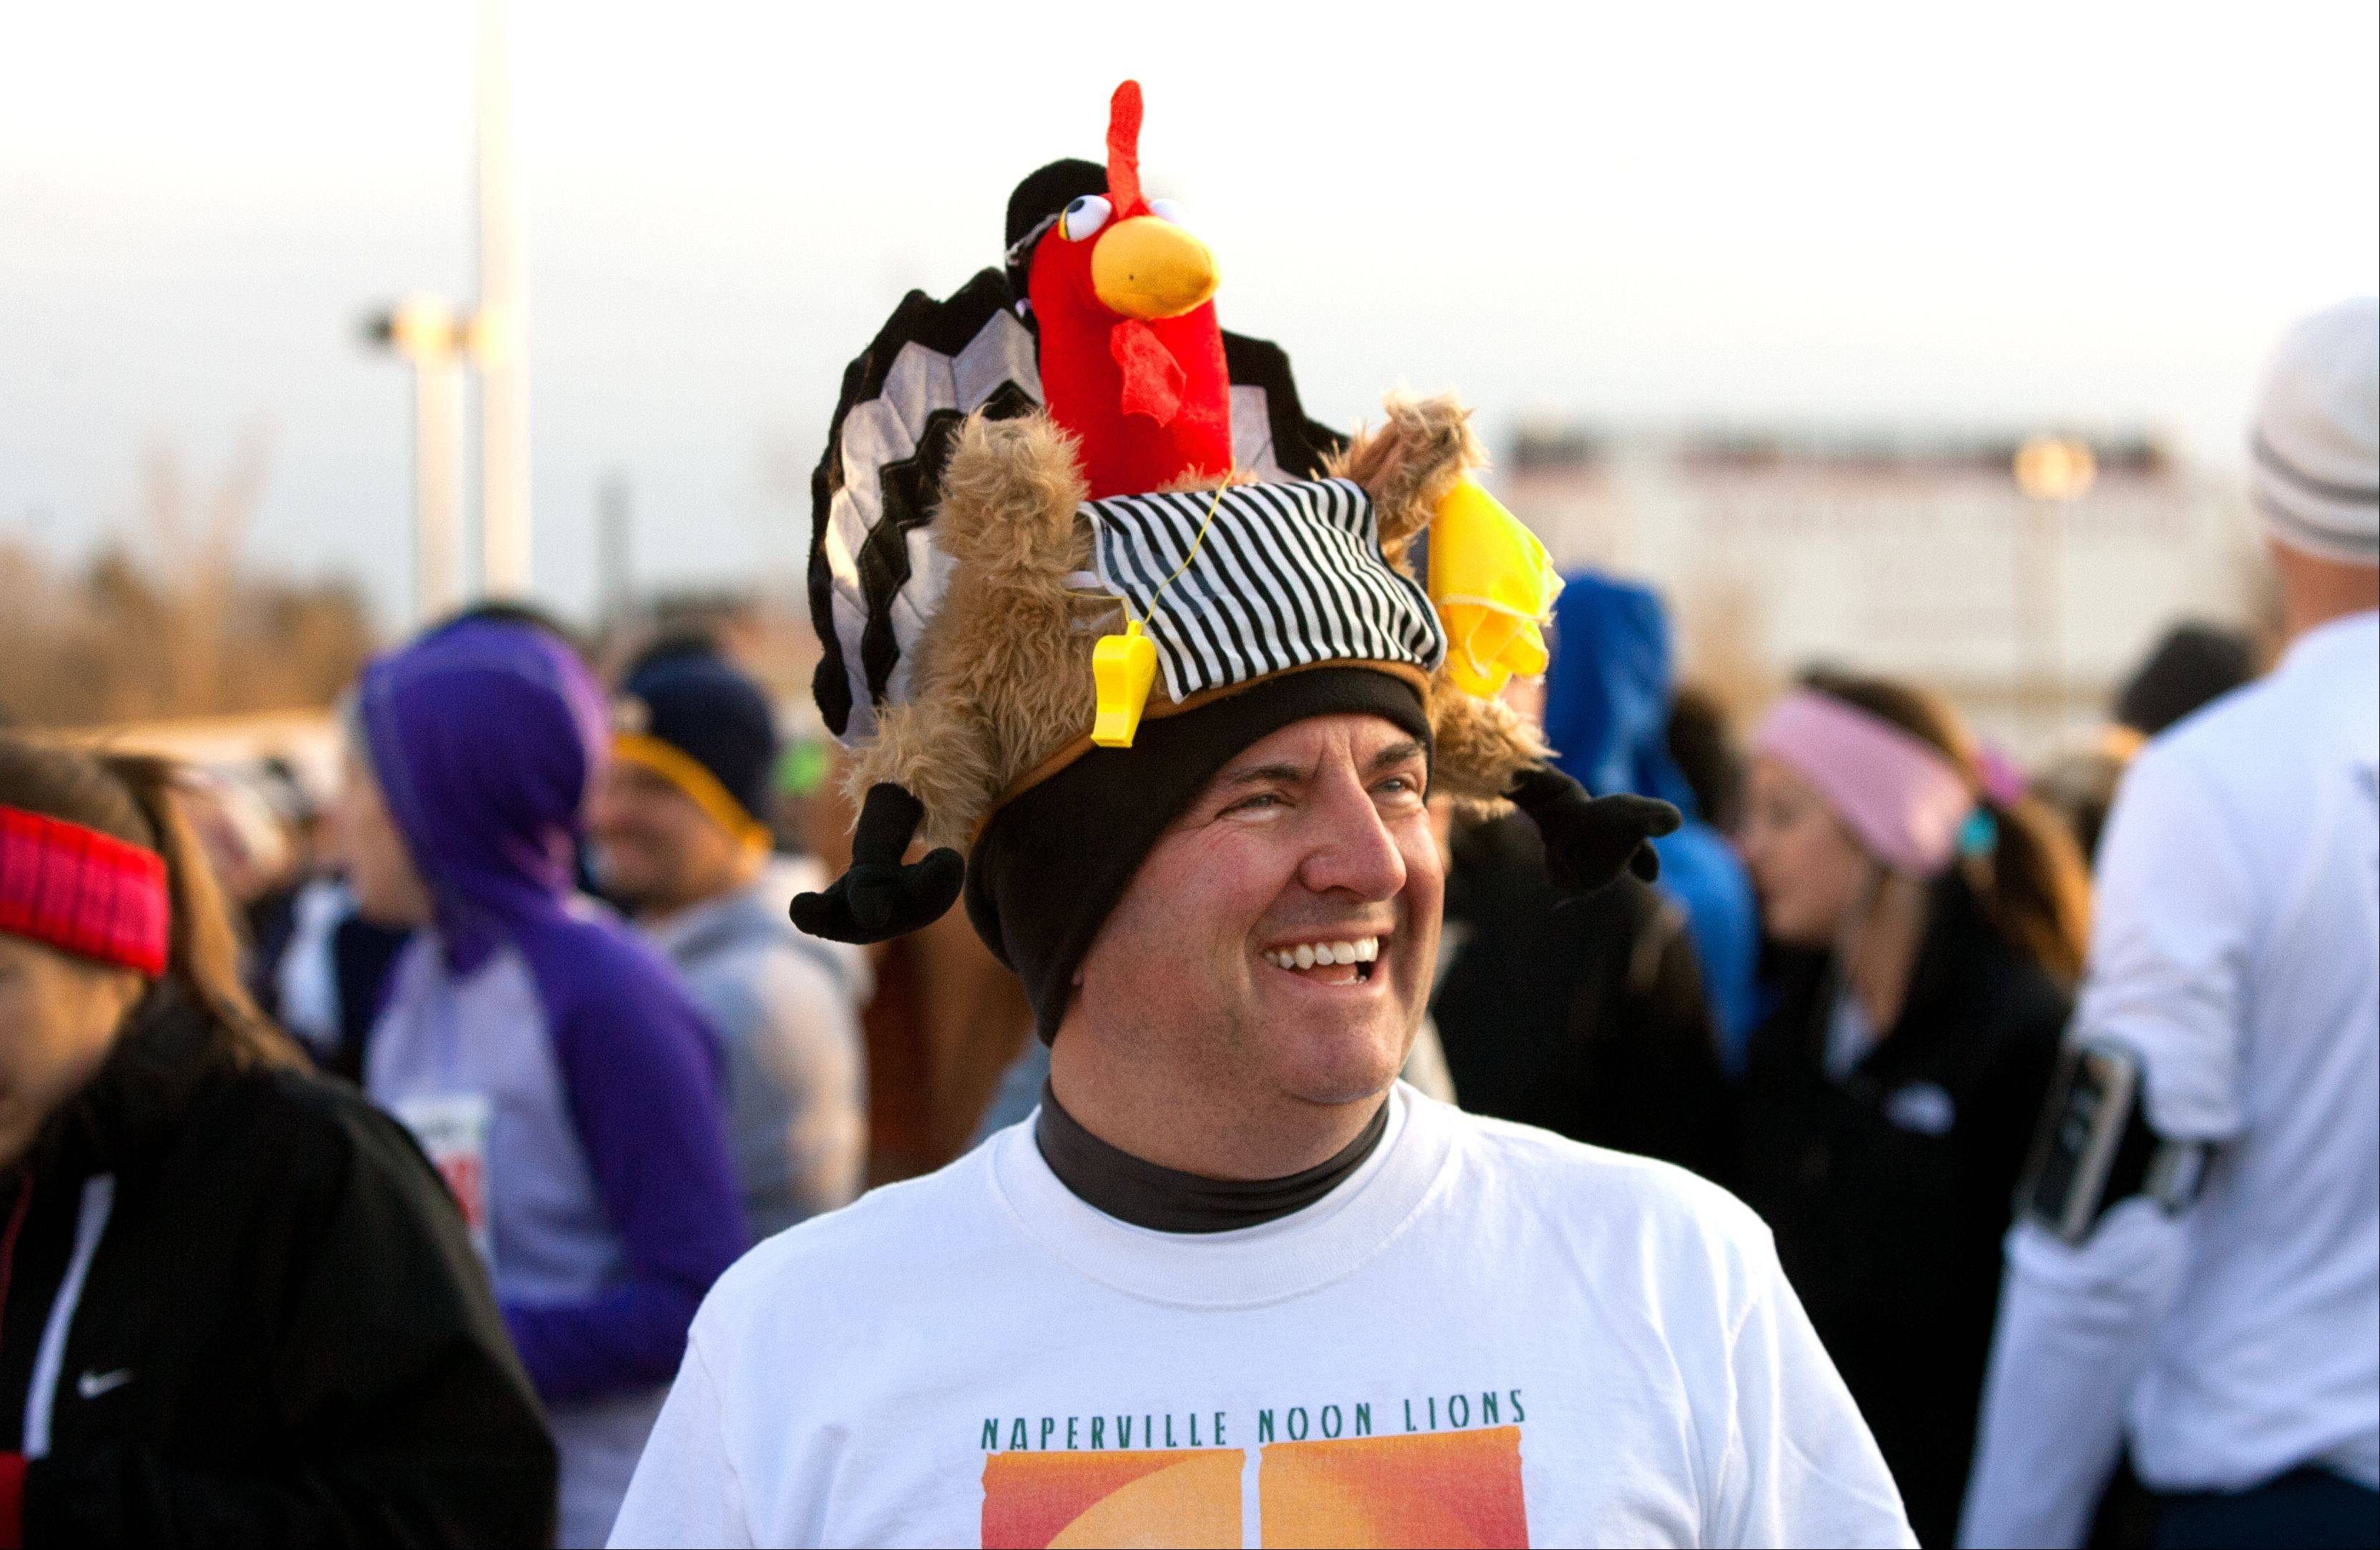 Mike Wolfsmith of Naperville, along with 7,500 other runners, participated in the 16th annual Naperville Noon Lions 5K Turkey Trot on Thanksgiving Day.